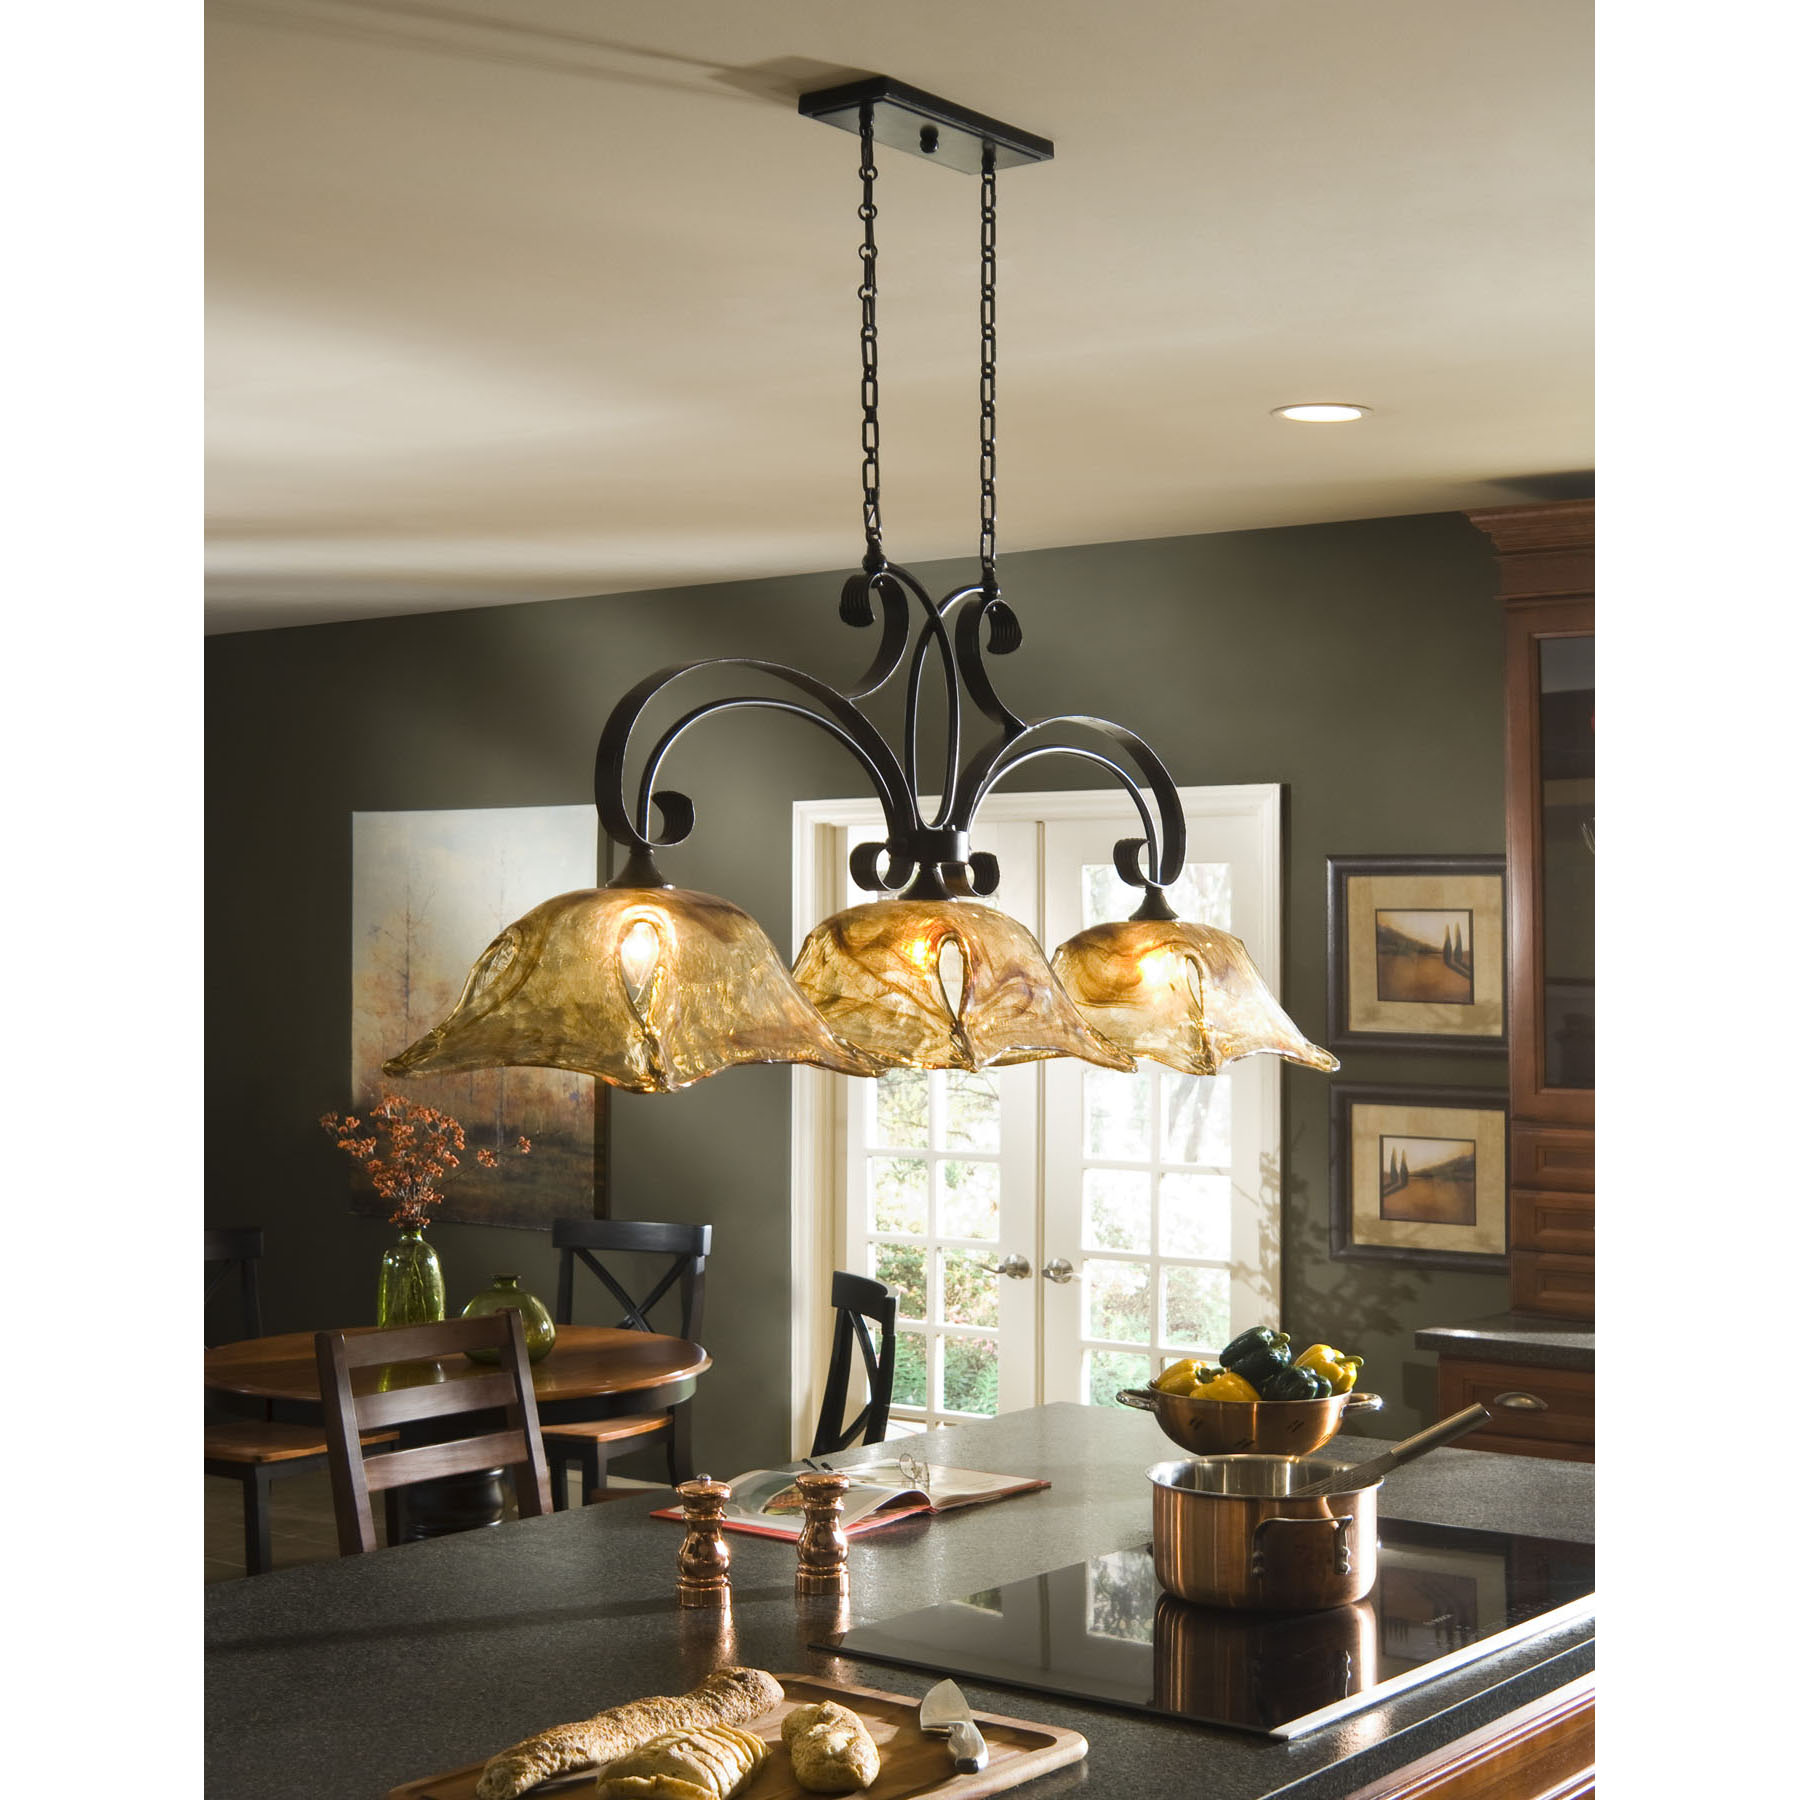 A Tip Sheet On How The Right Lighting Can Make The Kitchen Come Alive Is Intr